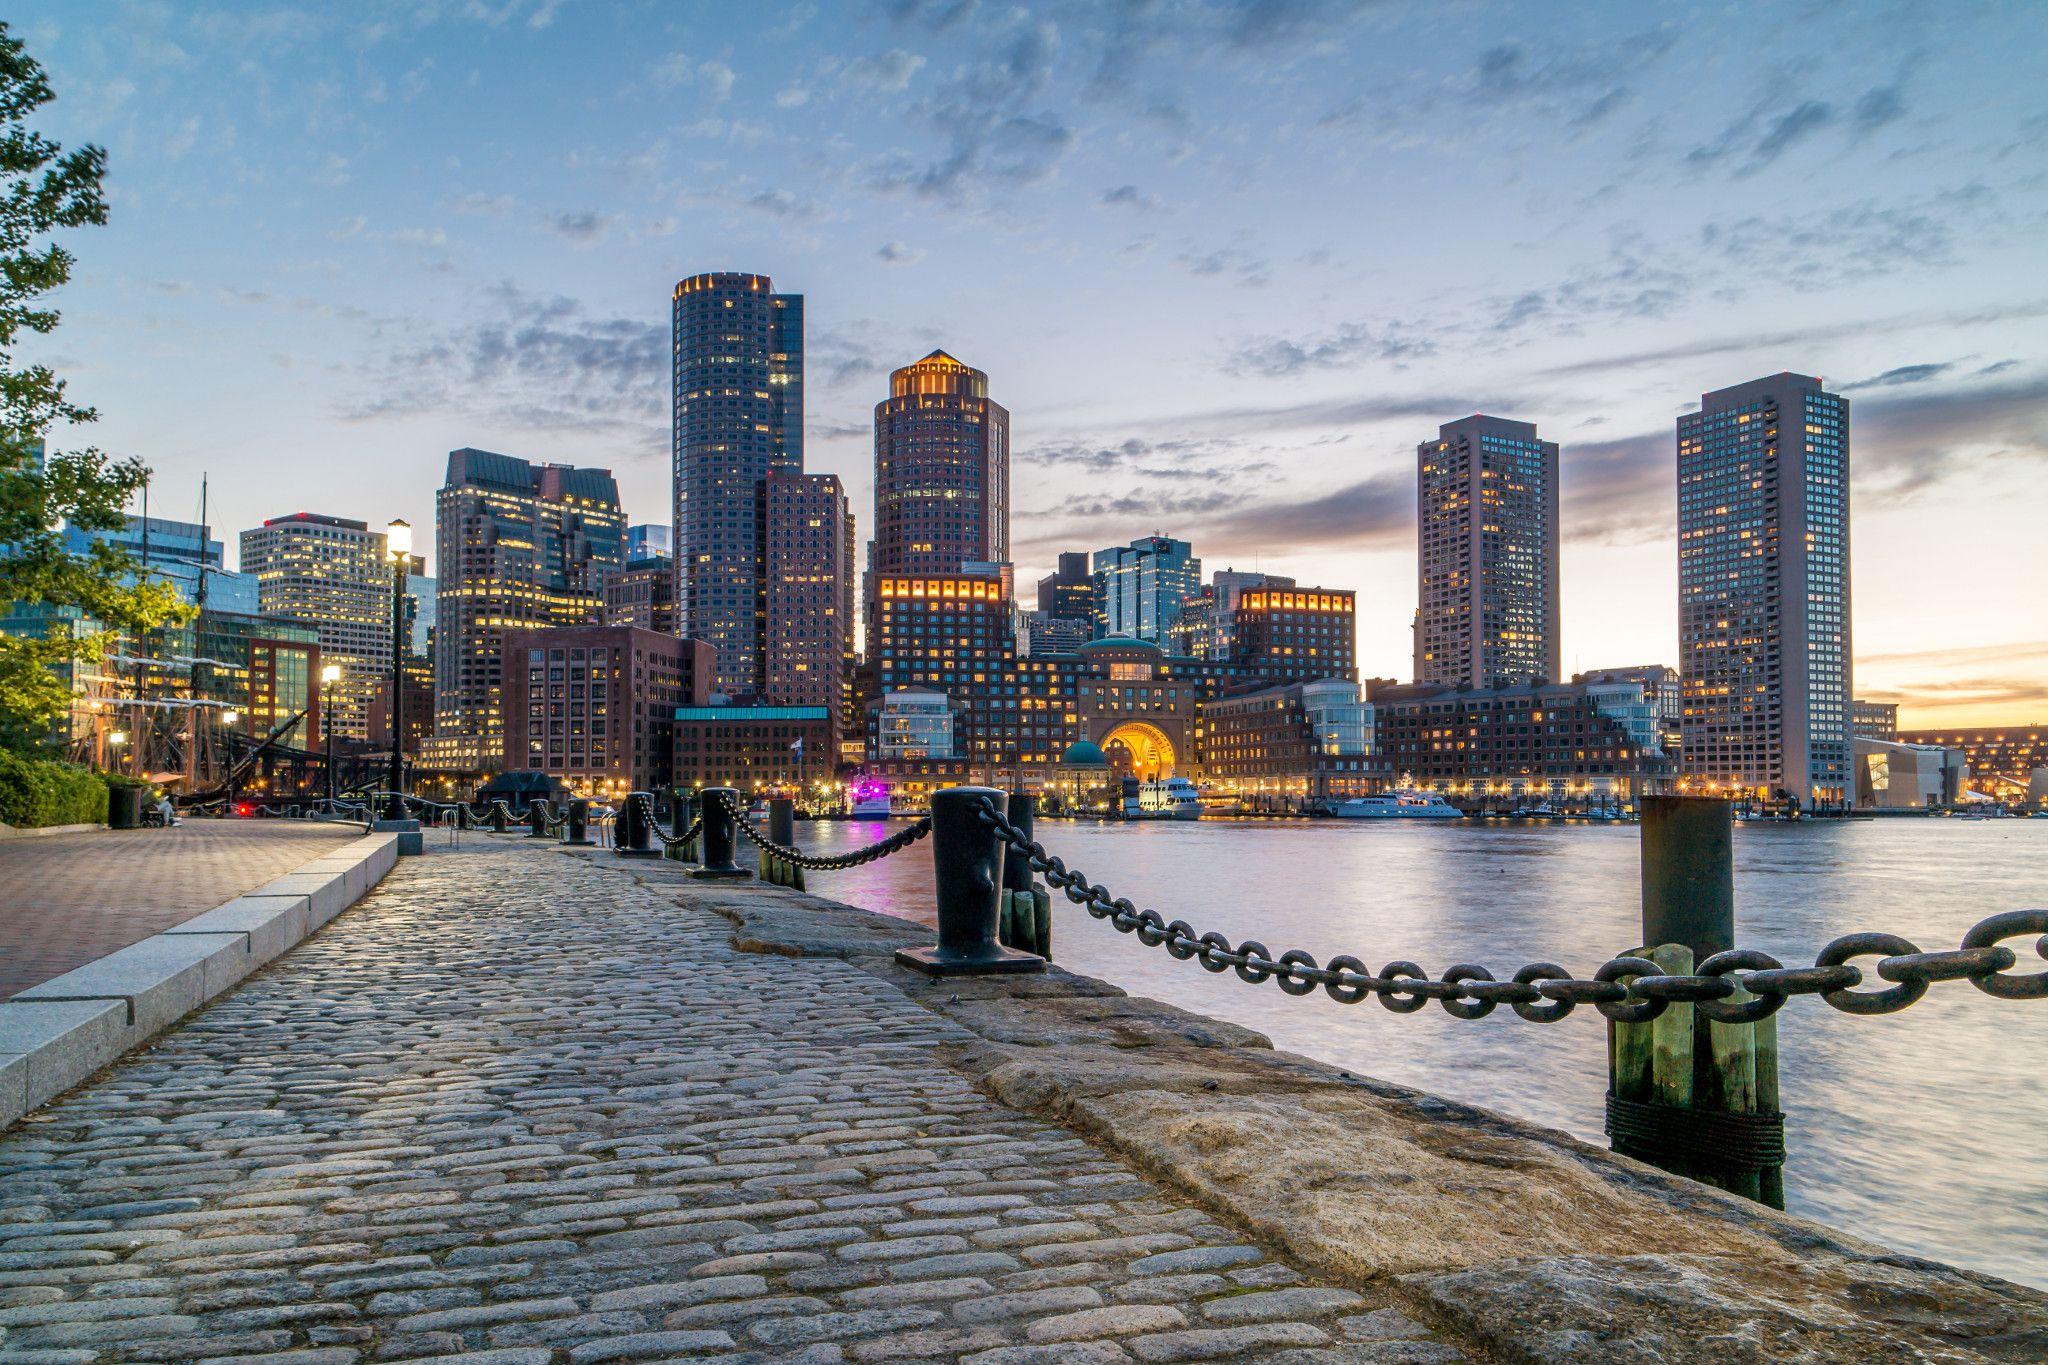 Join us at the Boston Workshop on June 27.